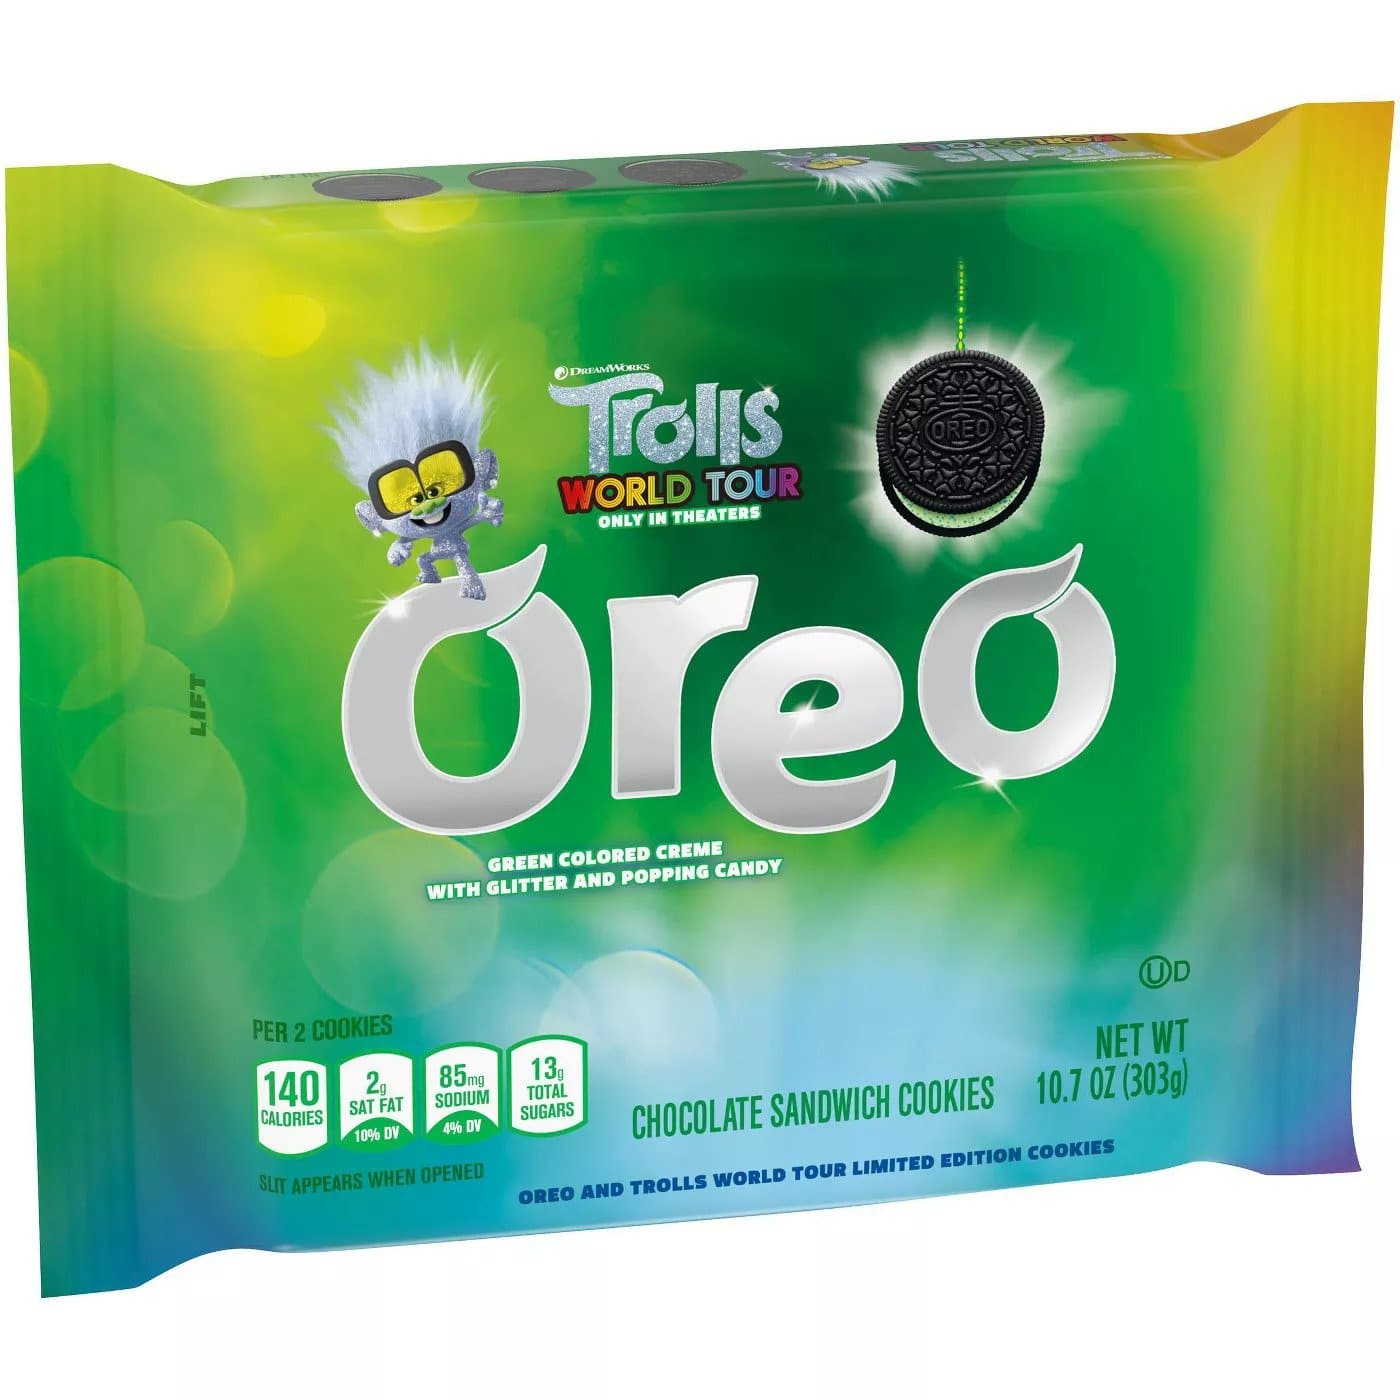 These Trolls World Tour Oreo cookies are stuffed with glittery crème fillings 19